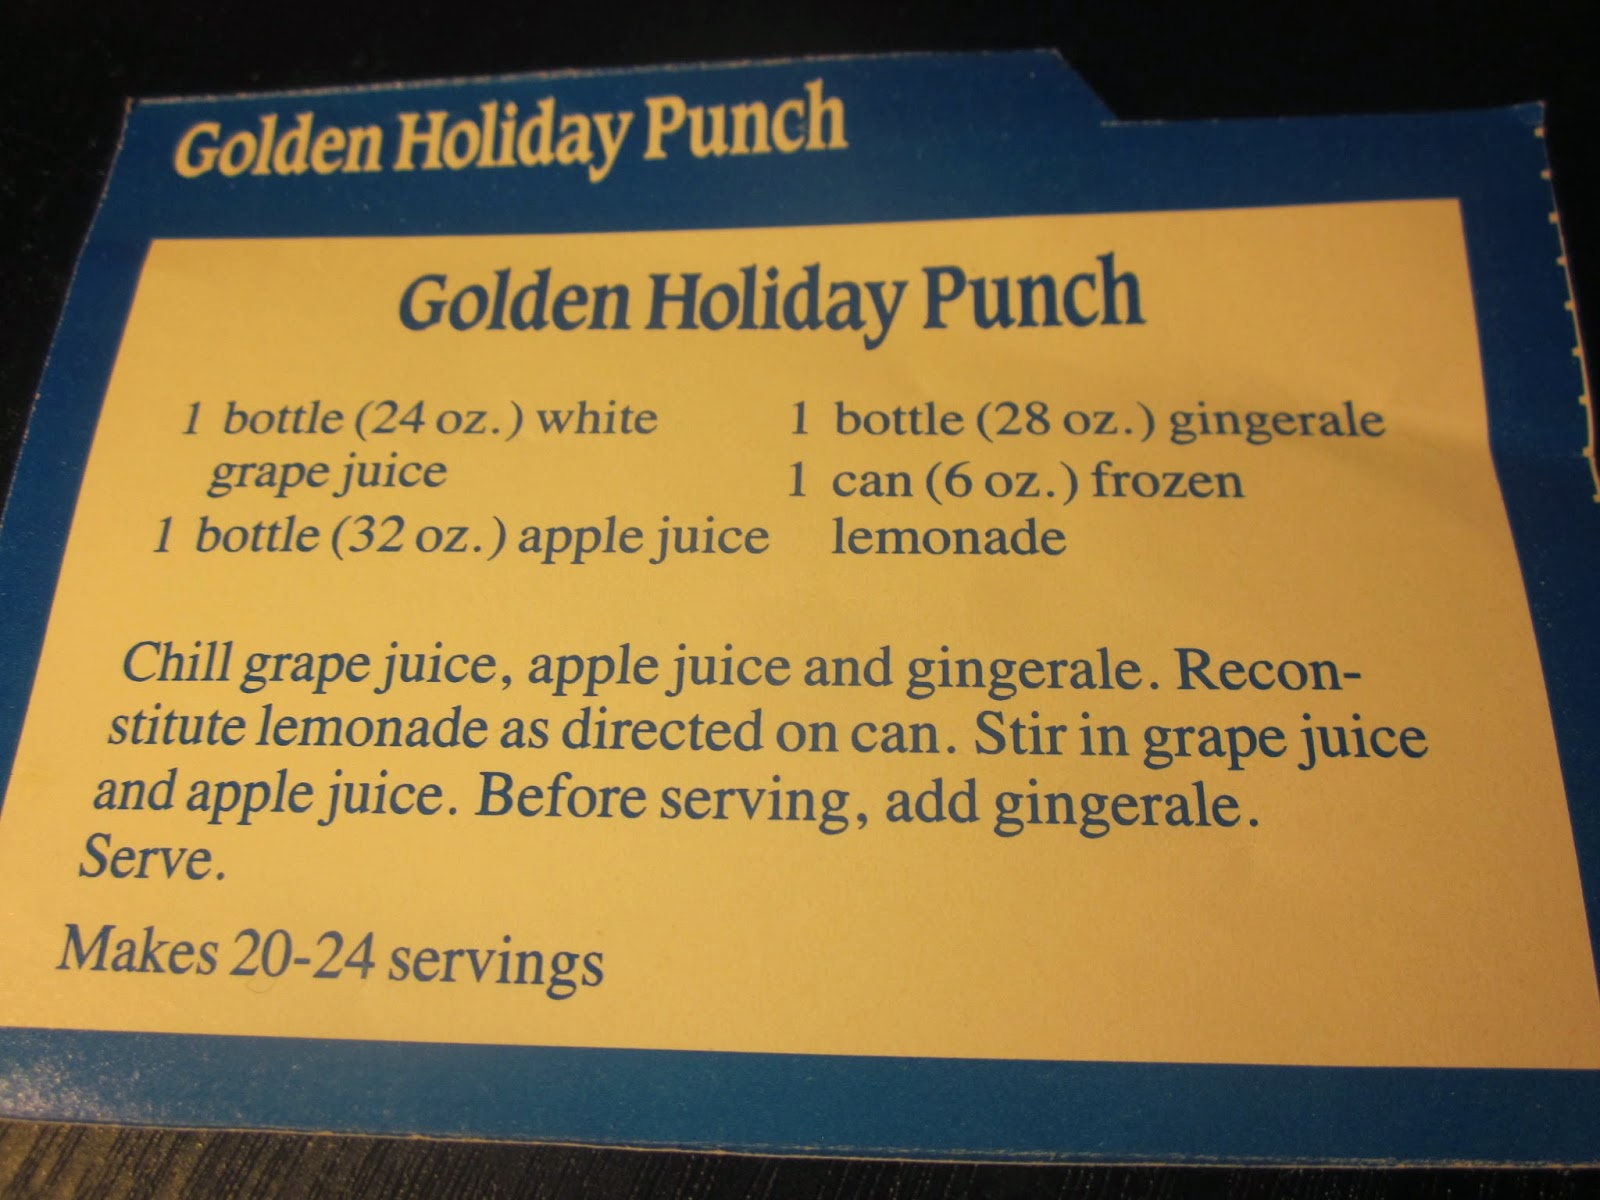 GOLDEN HOLIDAY PUNCH